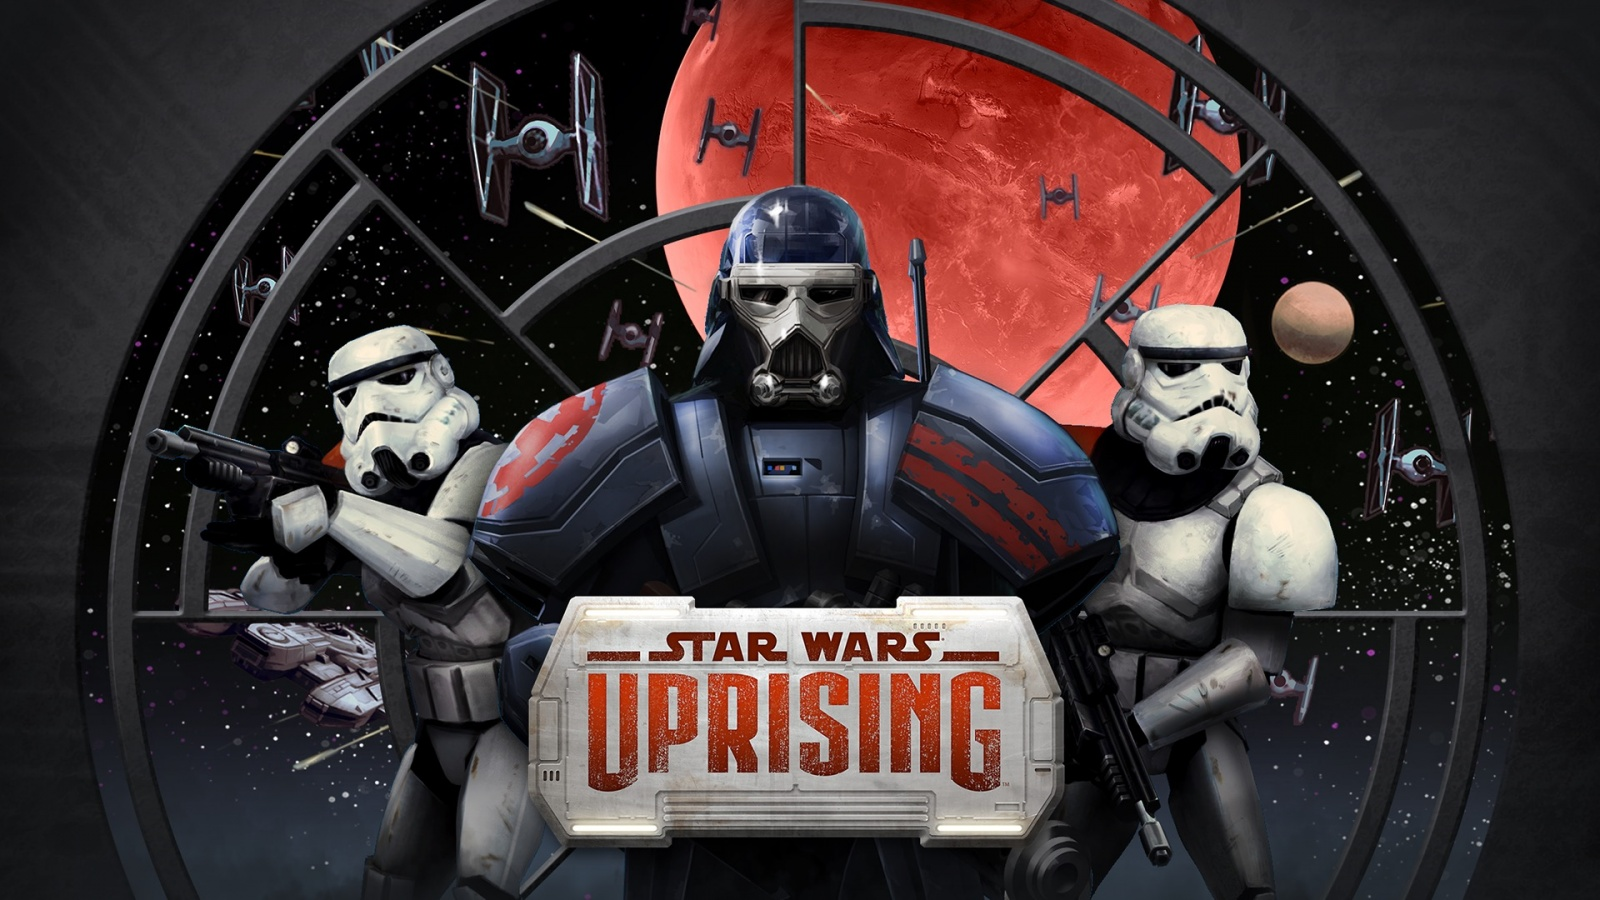 star-wars-uprising-is-hotter-than-a-night-on-hoth-inside-a-tauntaun-image-cultofandroidcomwp-contentuploads201509SWUP_EN_Title_Screen_01-jpg